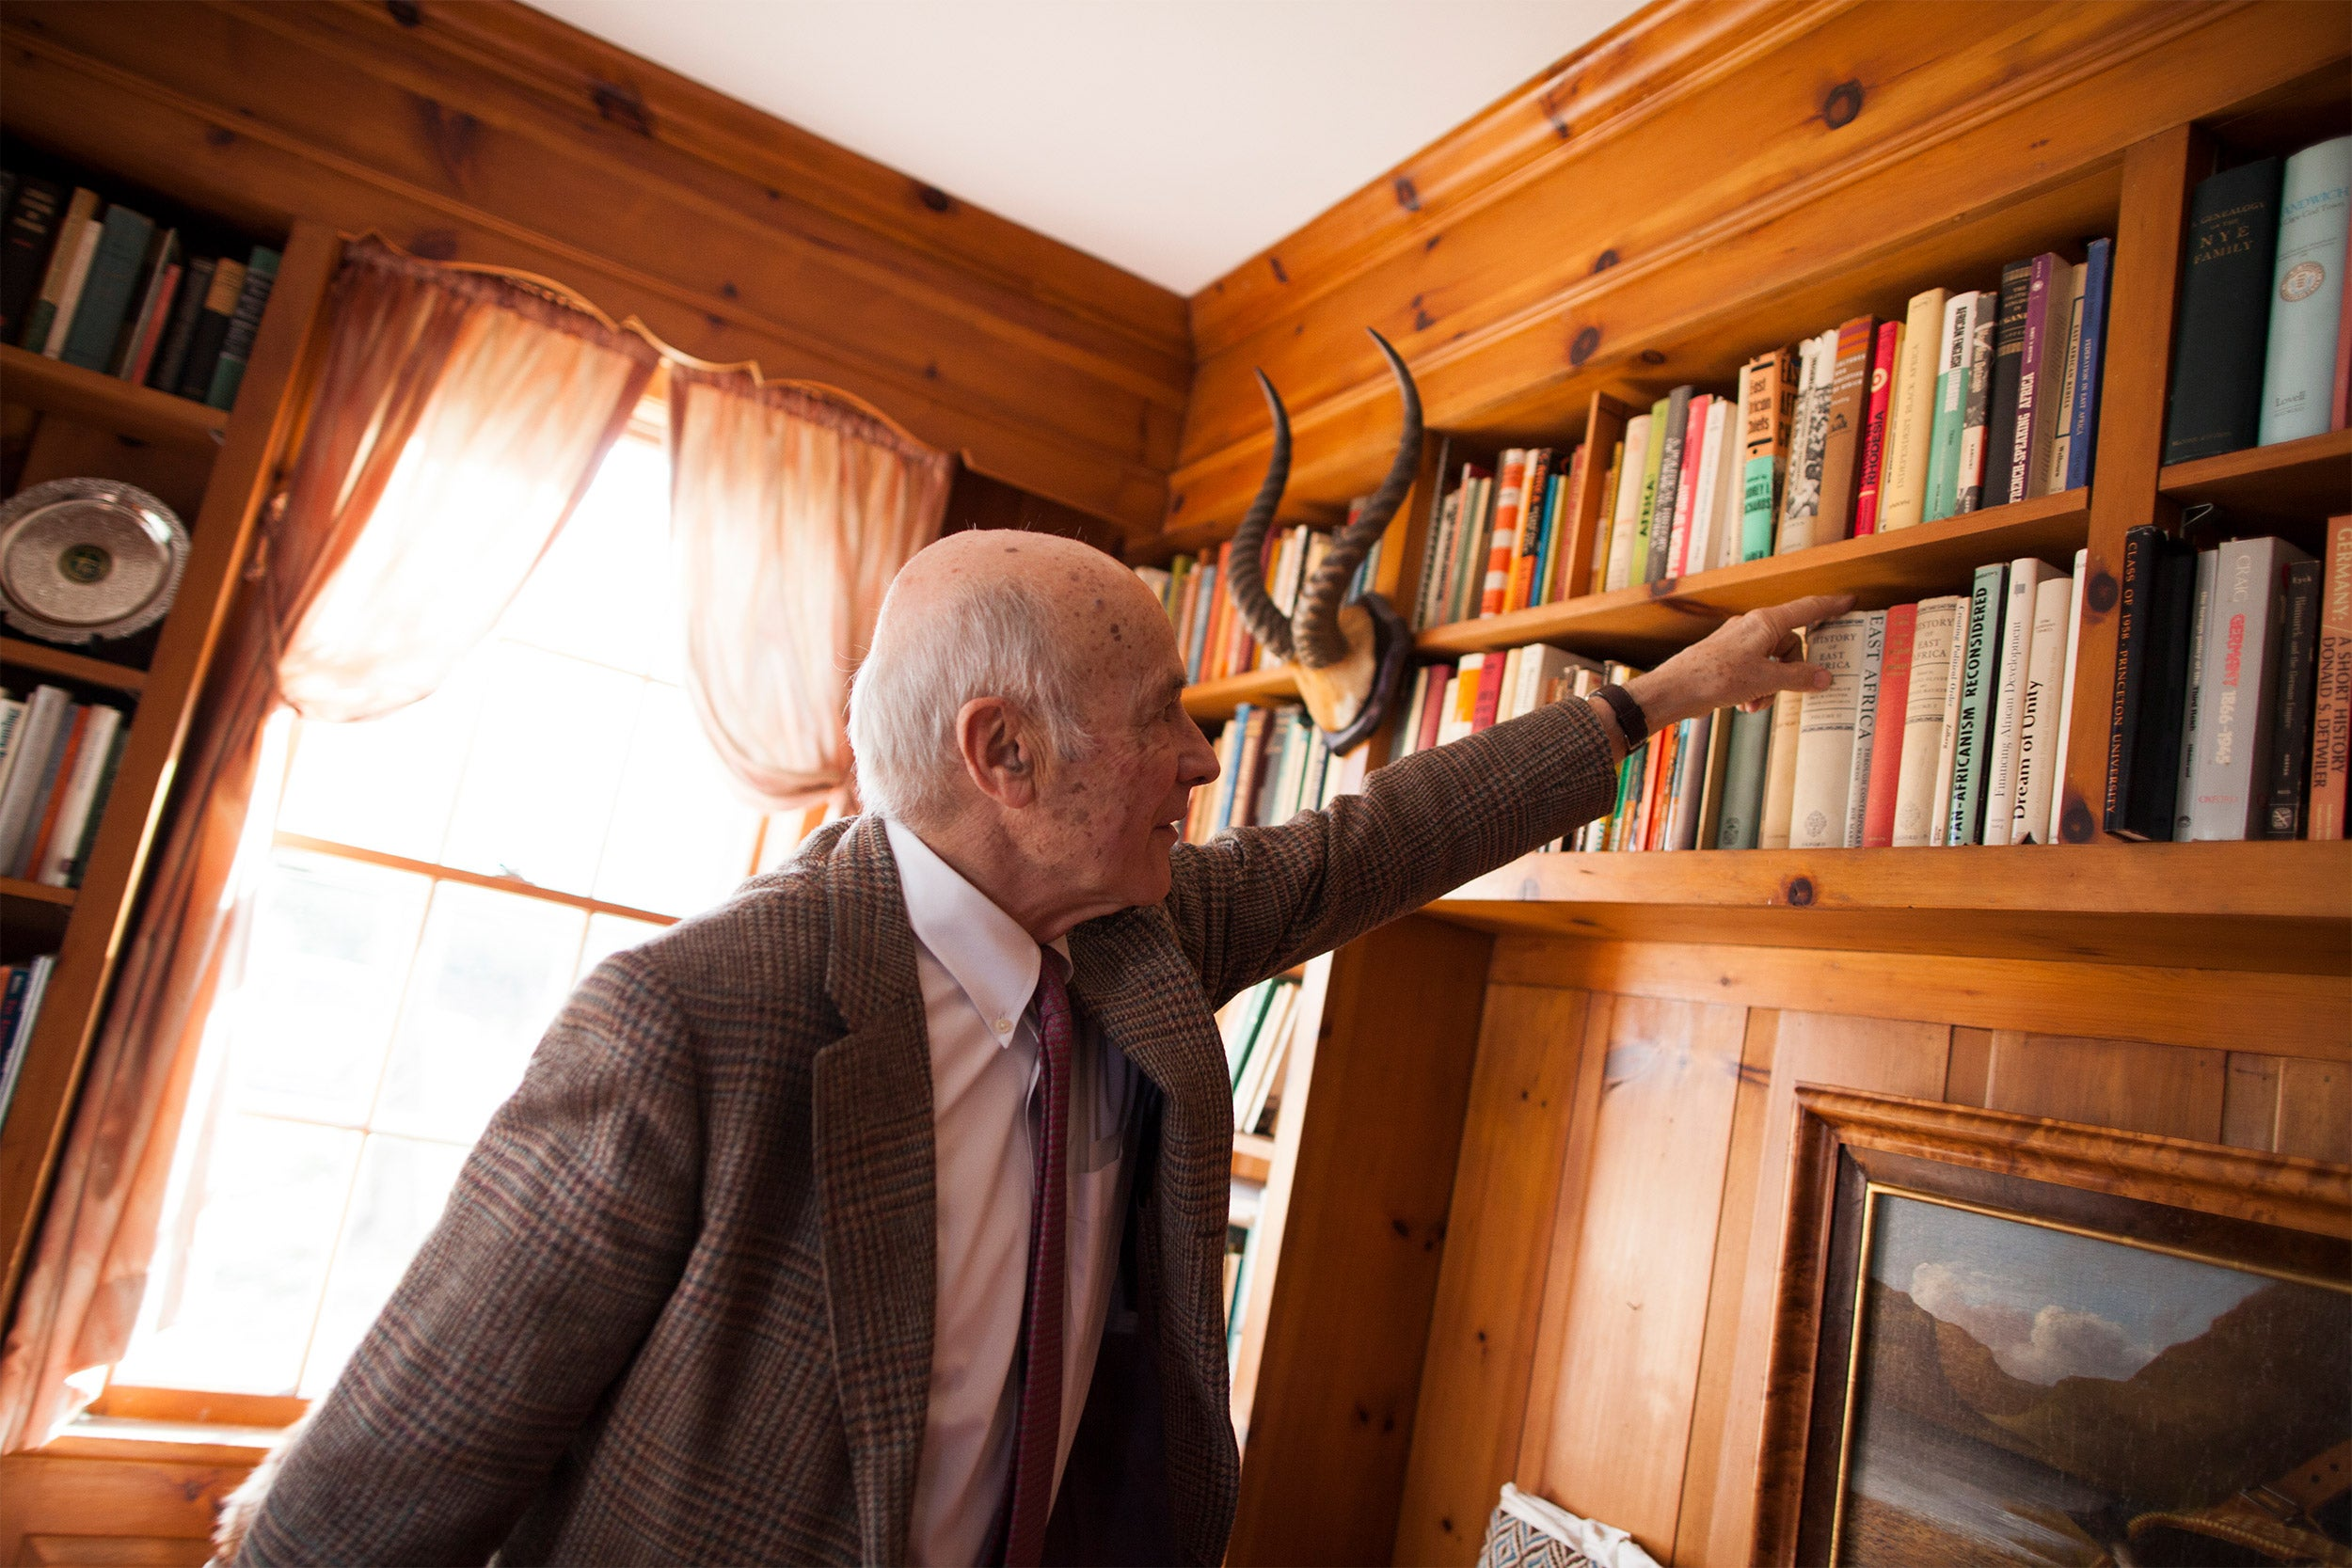 Joseph Nye in his study at home.